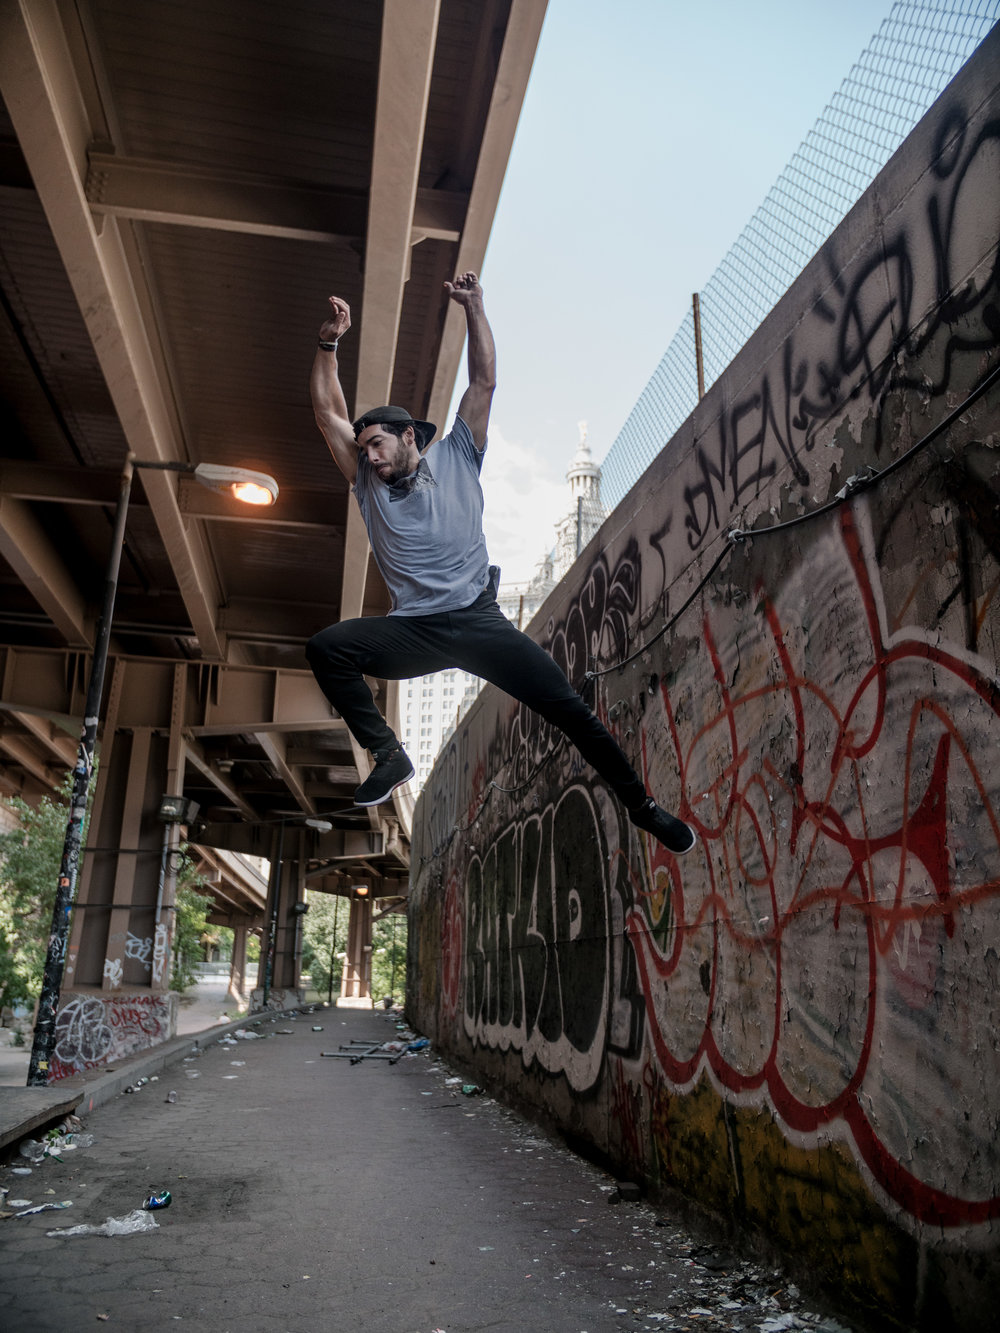 Mike-Araujo-Parkour-Motus-Projects-Parkour-Denims-New-York-NYC-NY-Manhattan-Vanguard-Brooklyn-Banks-Steve-Zavitz